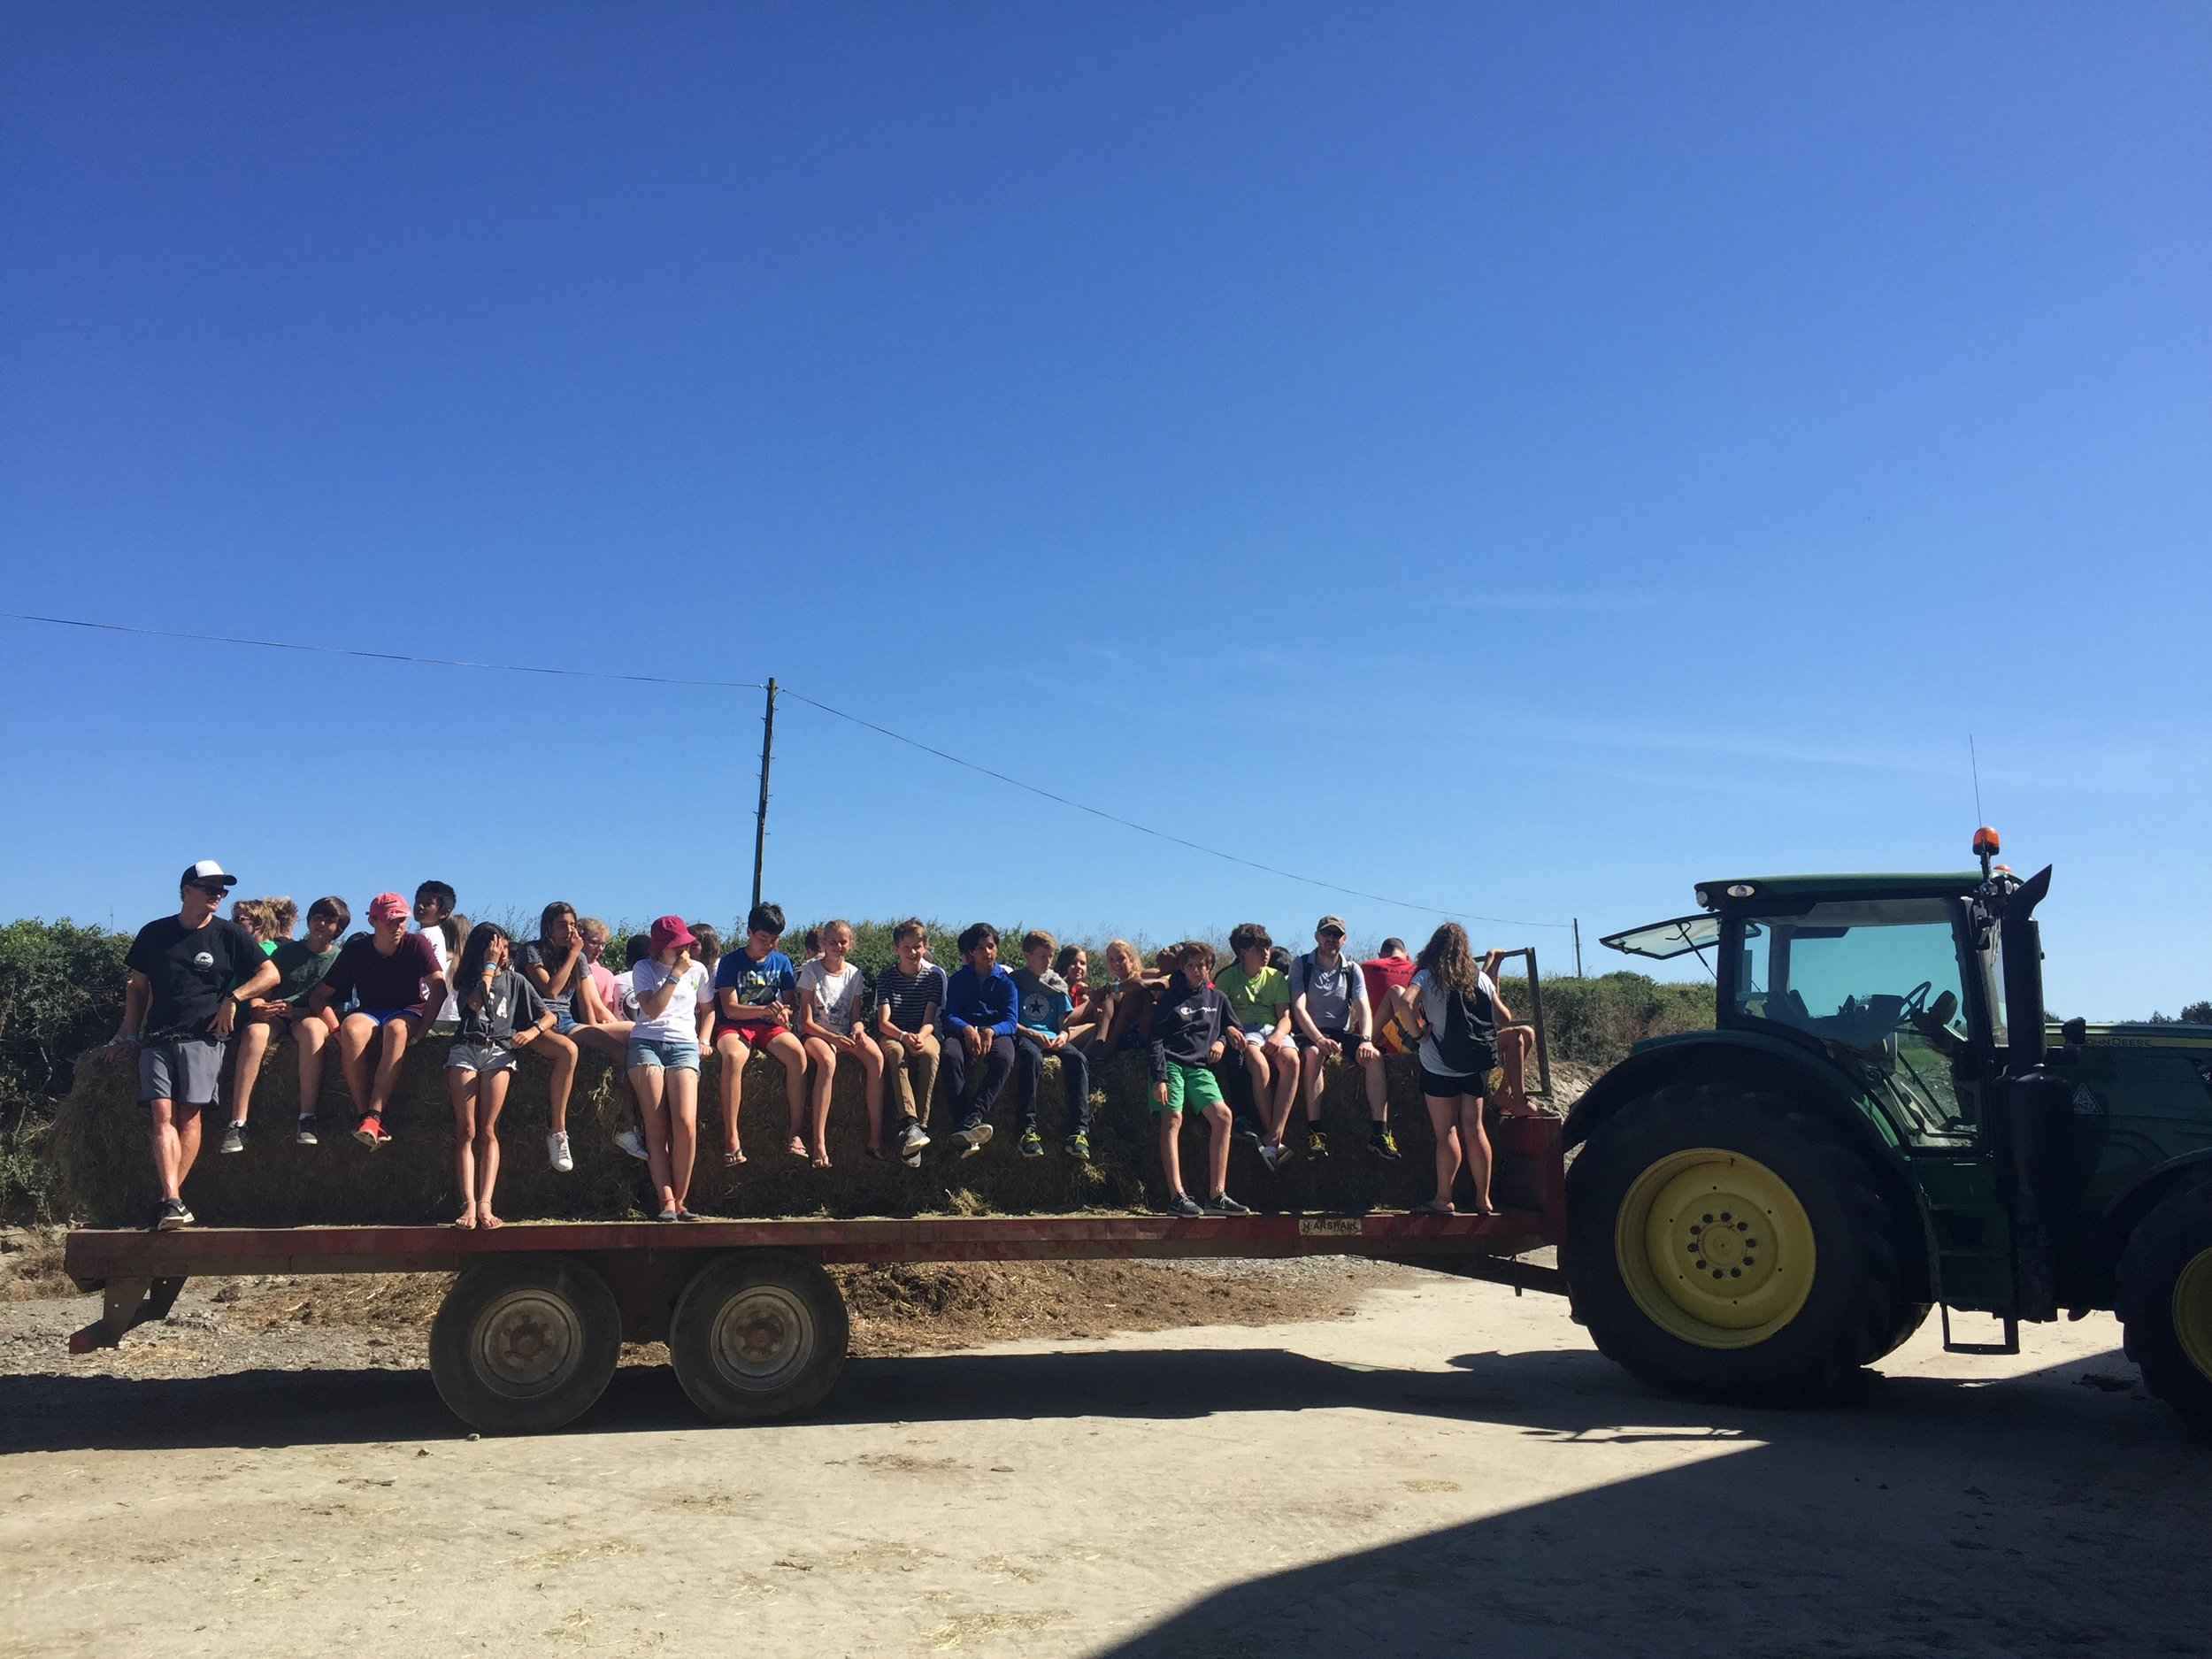 FARM VISIT - Groups will visit a local farm that farms oysters. This is a unique experience that you would not find in many other places! Students will have the chance to try oysters, learn about the purification method and the sustainability of oyster farming.